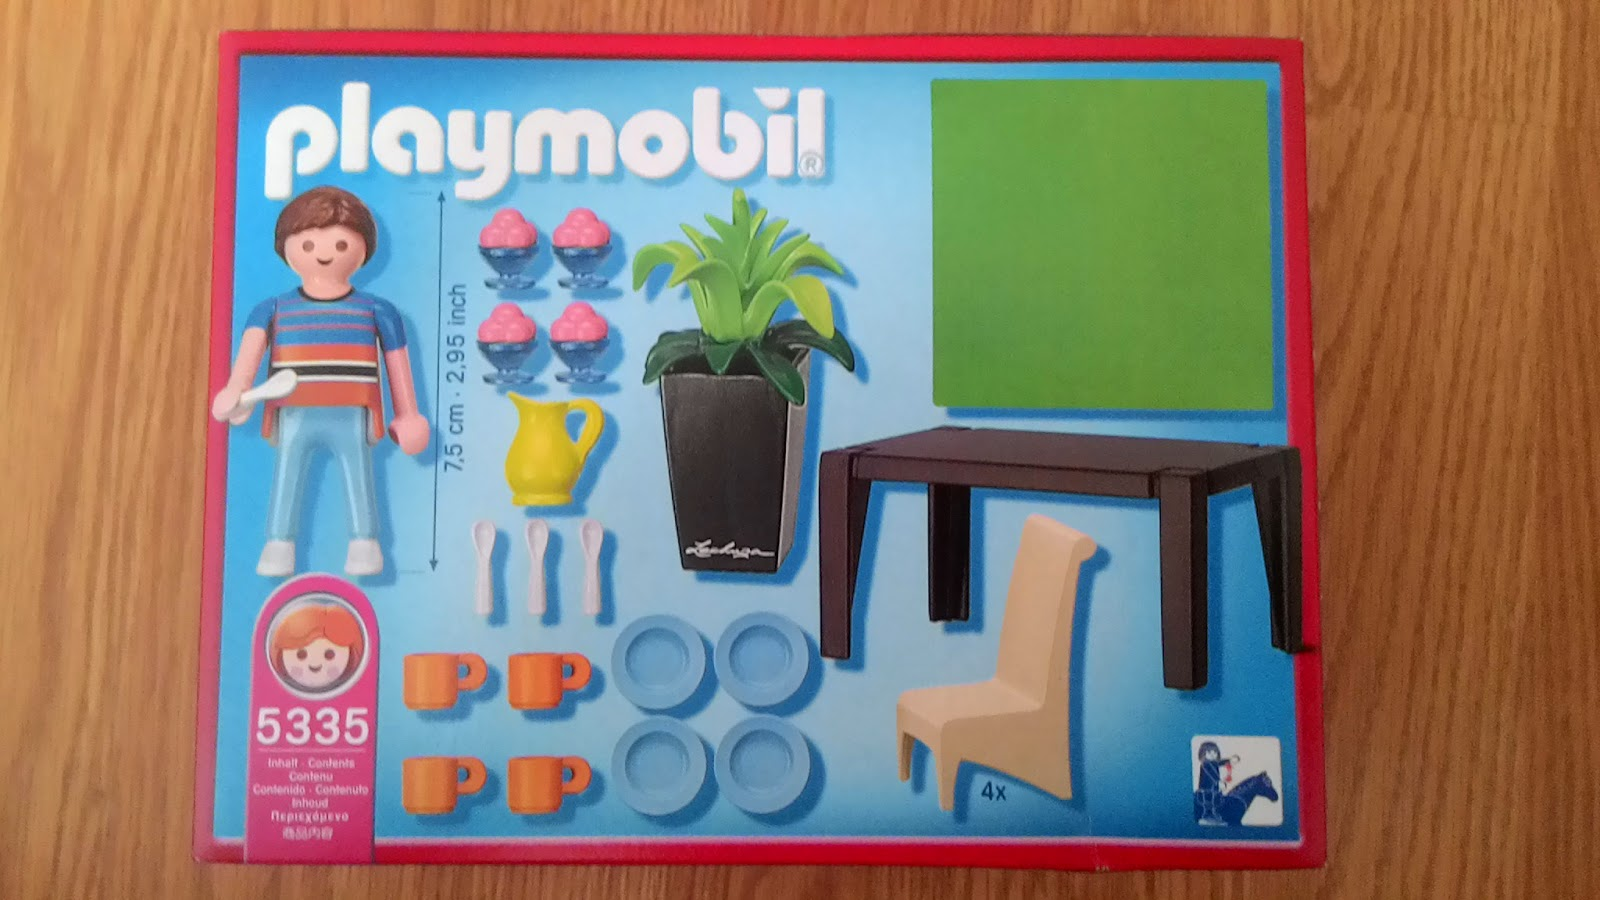 Playmobil 5335 sophia playmobil for Playmobil esszimmer 5335